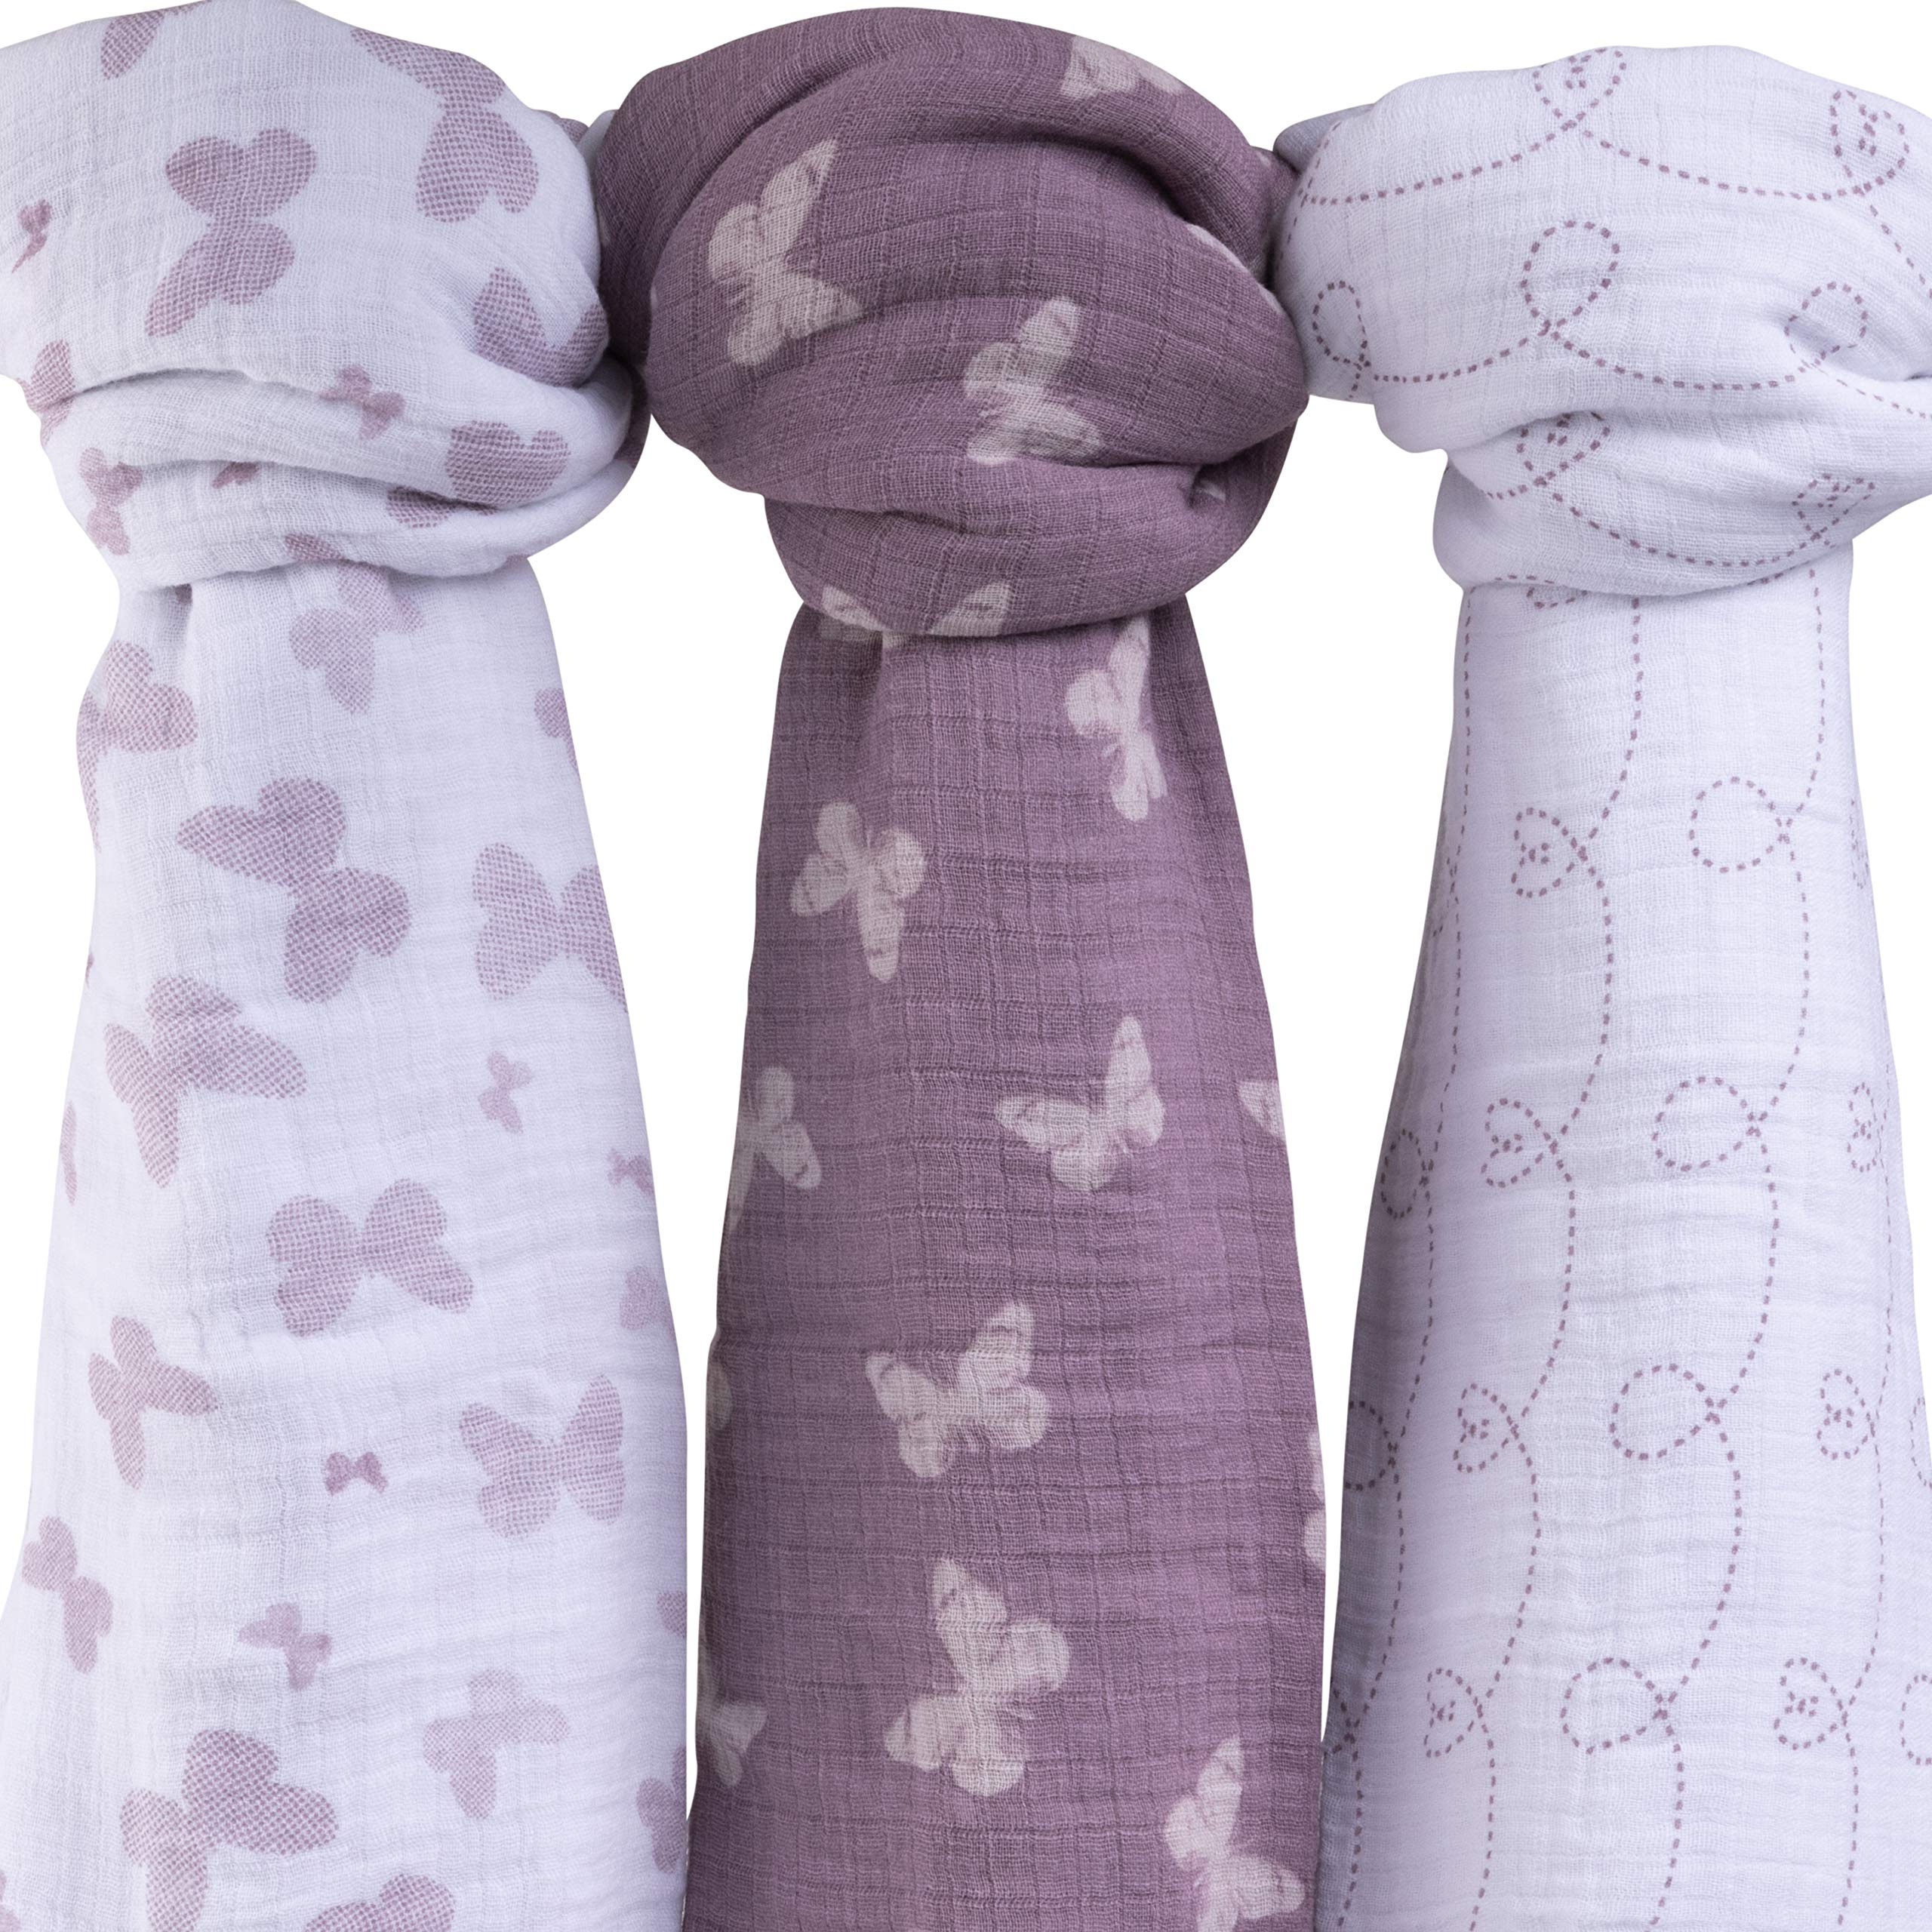 Muslin Swaddle Blanket 100% Soft Muslin Cotton 3 Pack 47''x 47'' (Lavender Butterfly) by Ely's & Co.